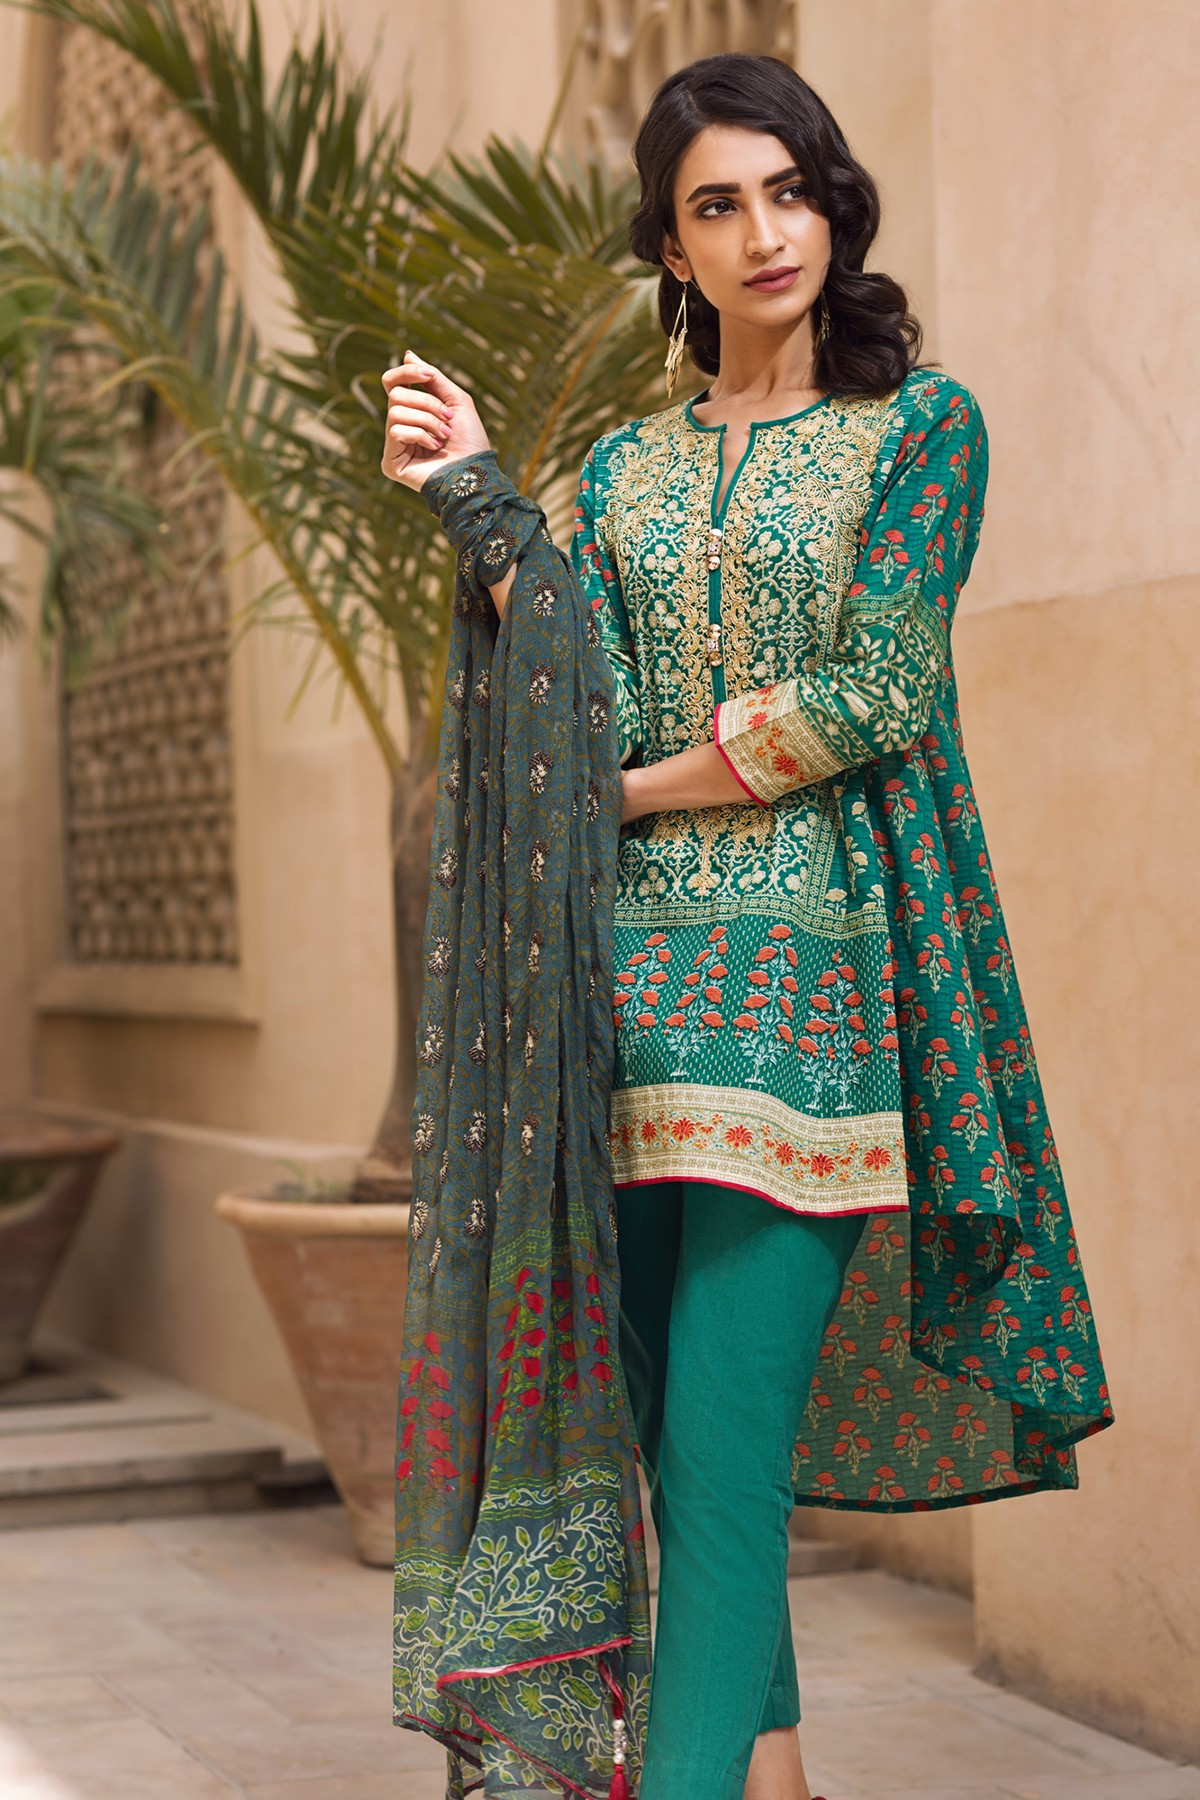 All about women fashion designer clothing and the latest fashion - Khaadi Lawn Chiffon Eid Dresses Designs Collection 2017 2018